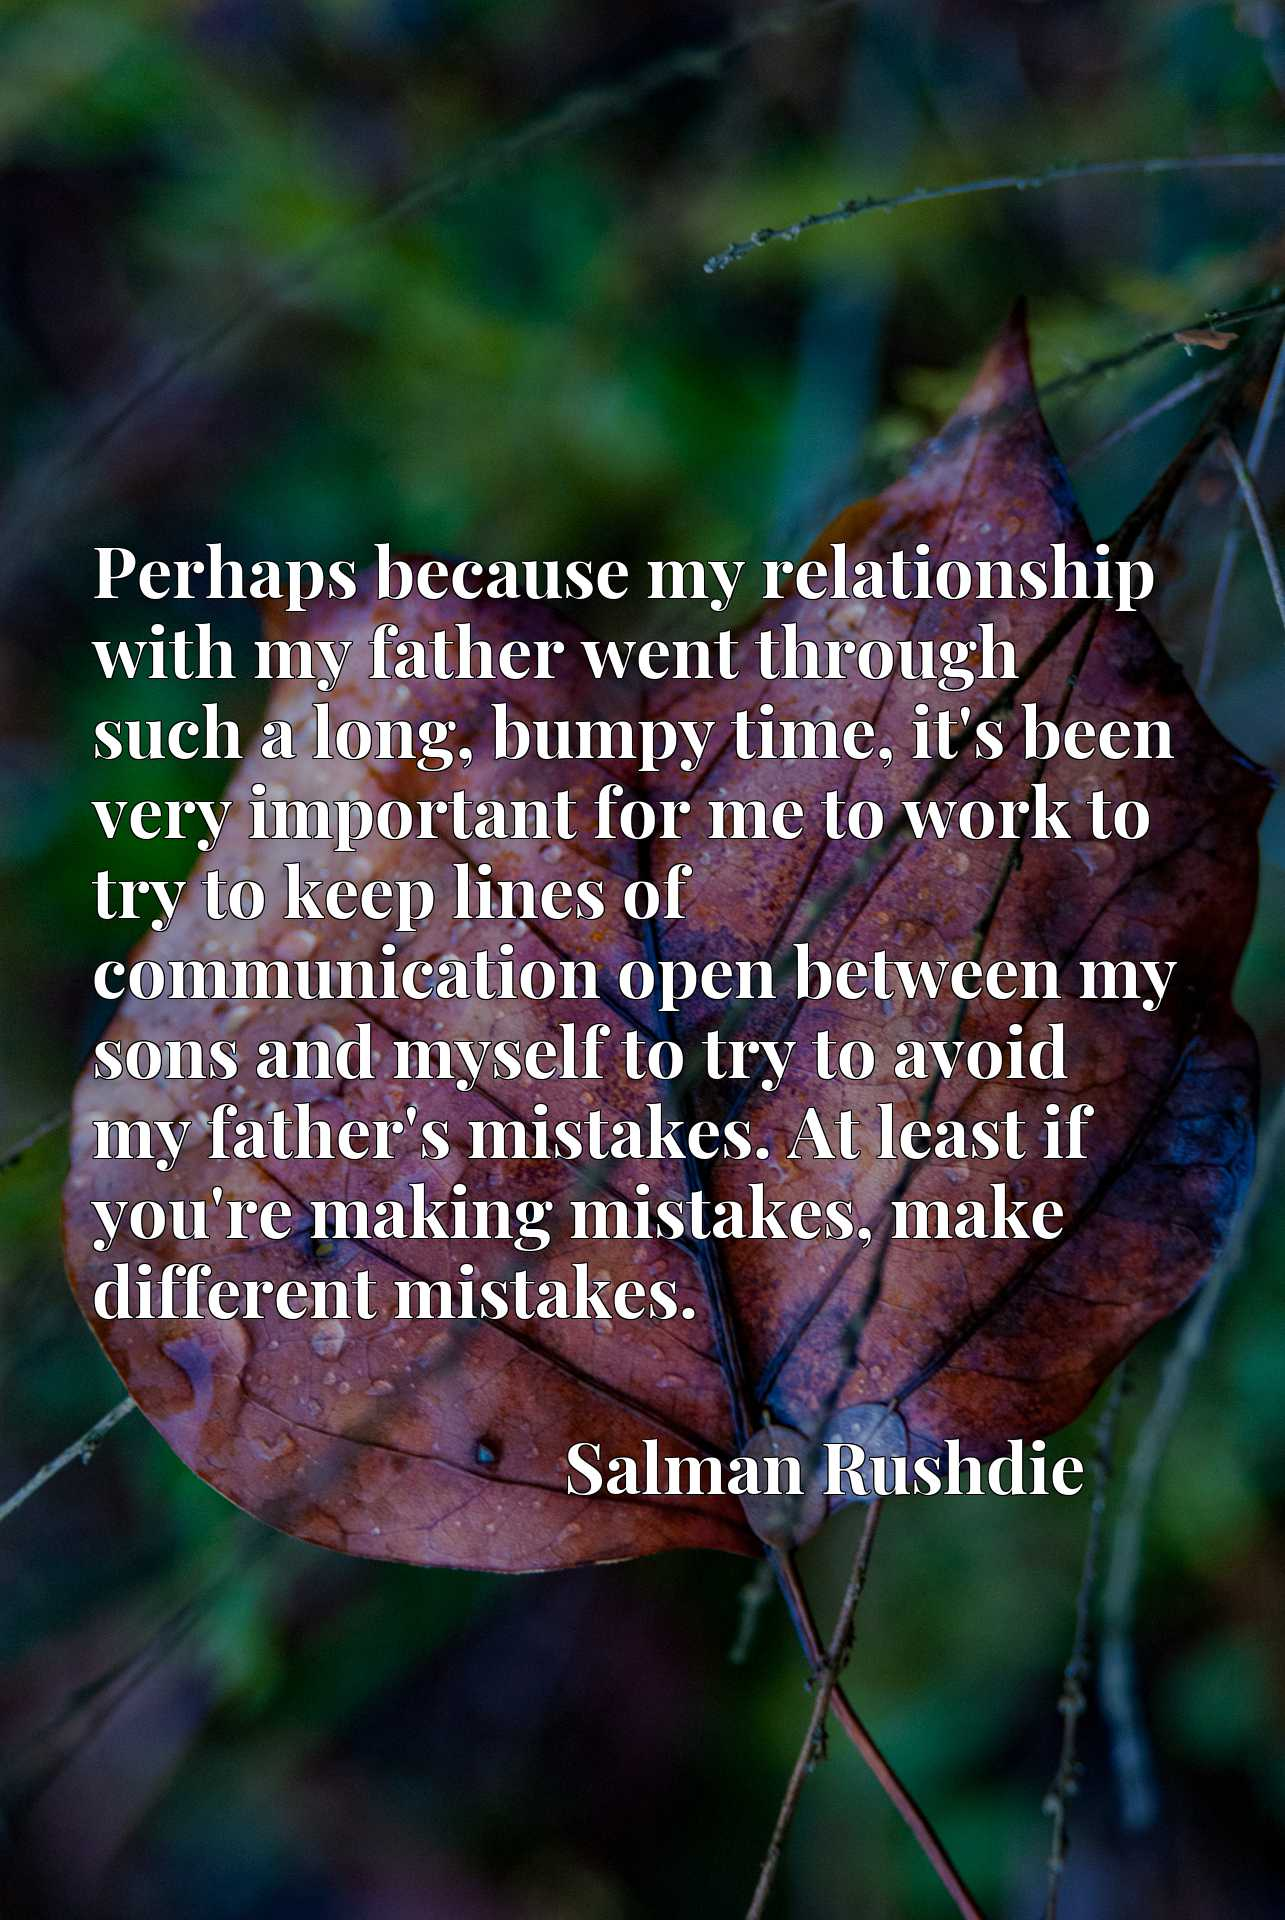 Perhaps because my relationship with my father went through such a long, bumpy time, it's been very important for me to work to try to keep lines of communication open between my sons and myself to try to avoid my father's mistakes. At least if you're making mistakes, make different mistakes.